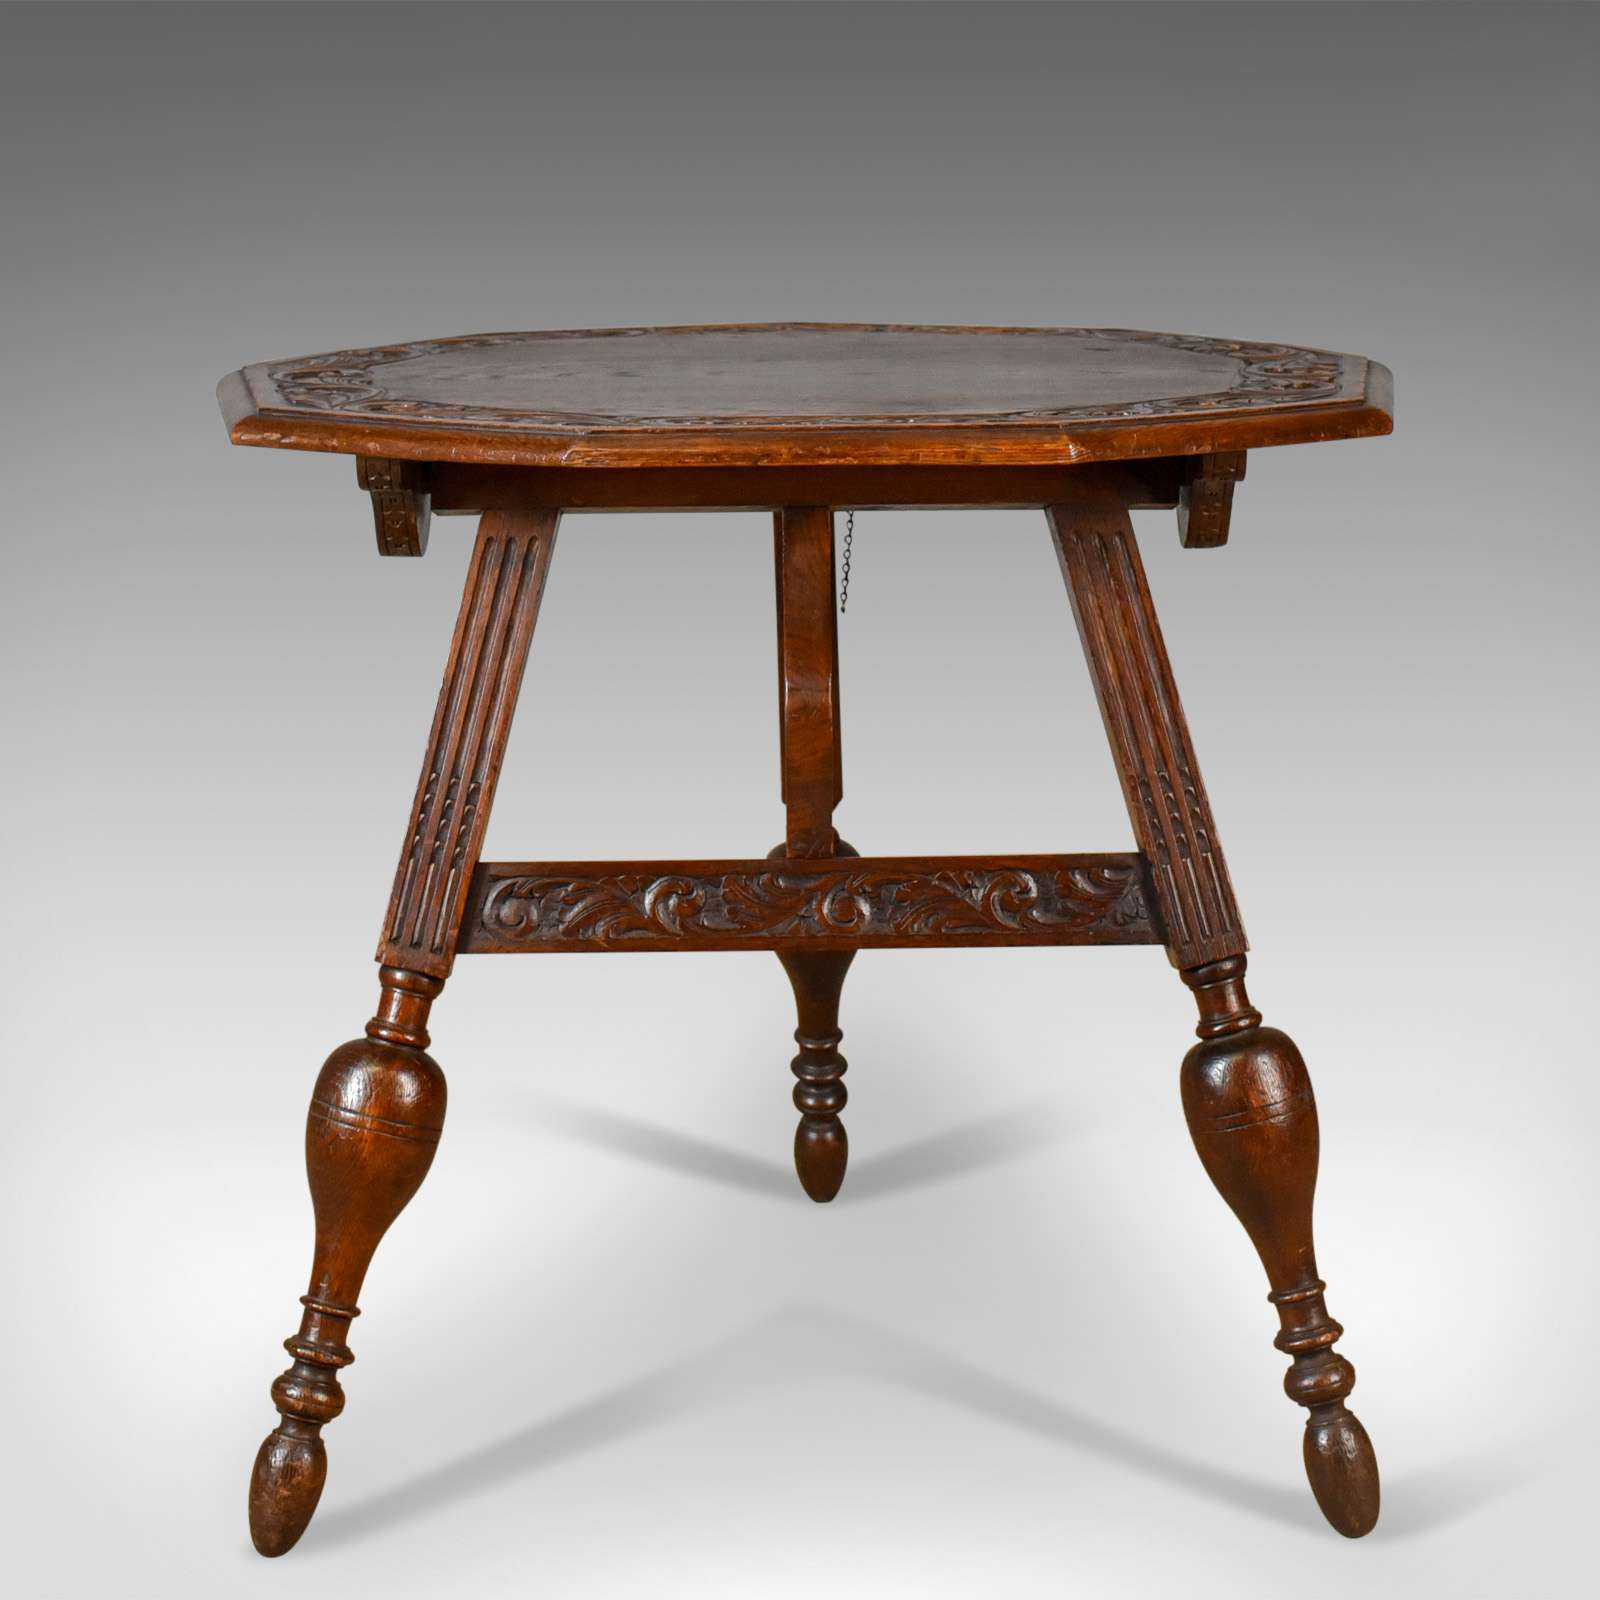 Antique Folding Table, Dutch, Friesland, Oak, Ships, Tavern, Campaign Circa 188